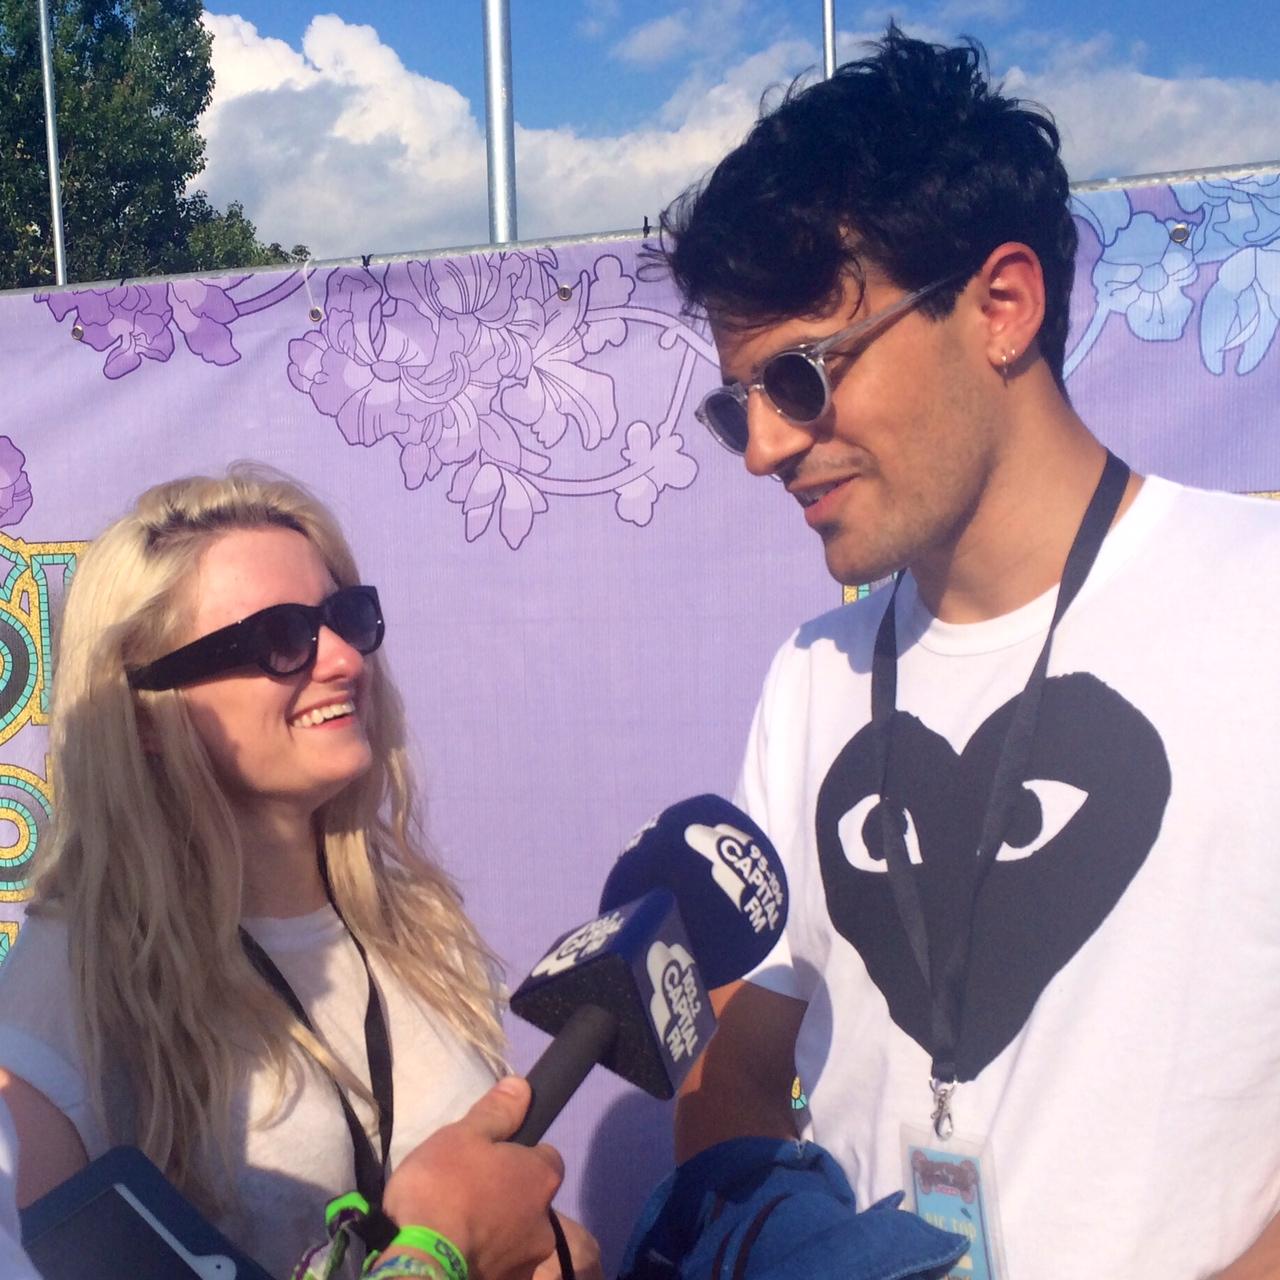 Clean Bandit at Isle of Wight Festival 2014